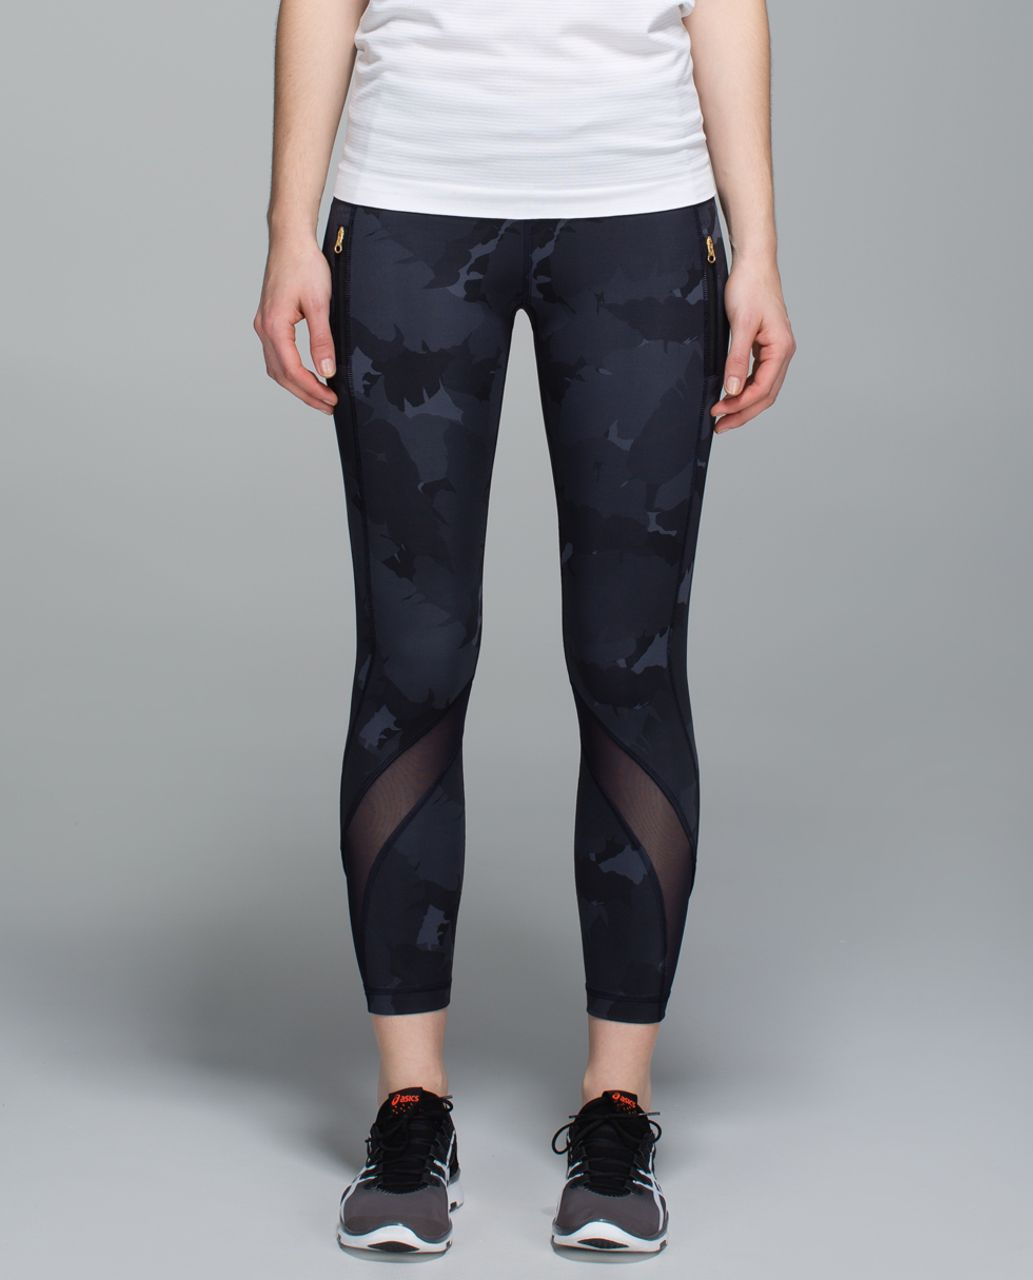 Lululemon Inspire Tight II *Full-On Luxtreme (Mesh) - Palm Party Naval Blue Black / Naval Blue